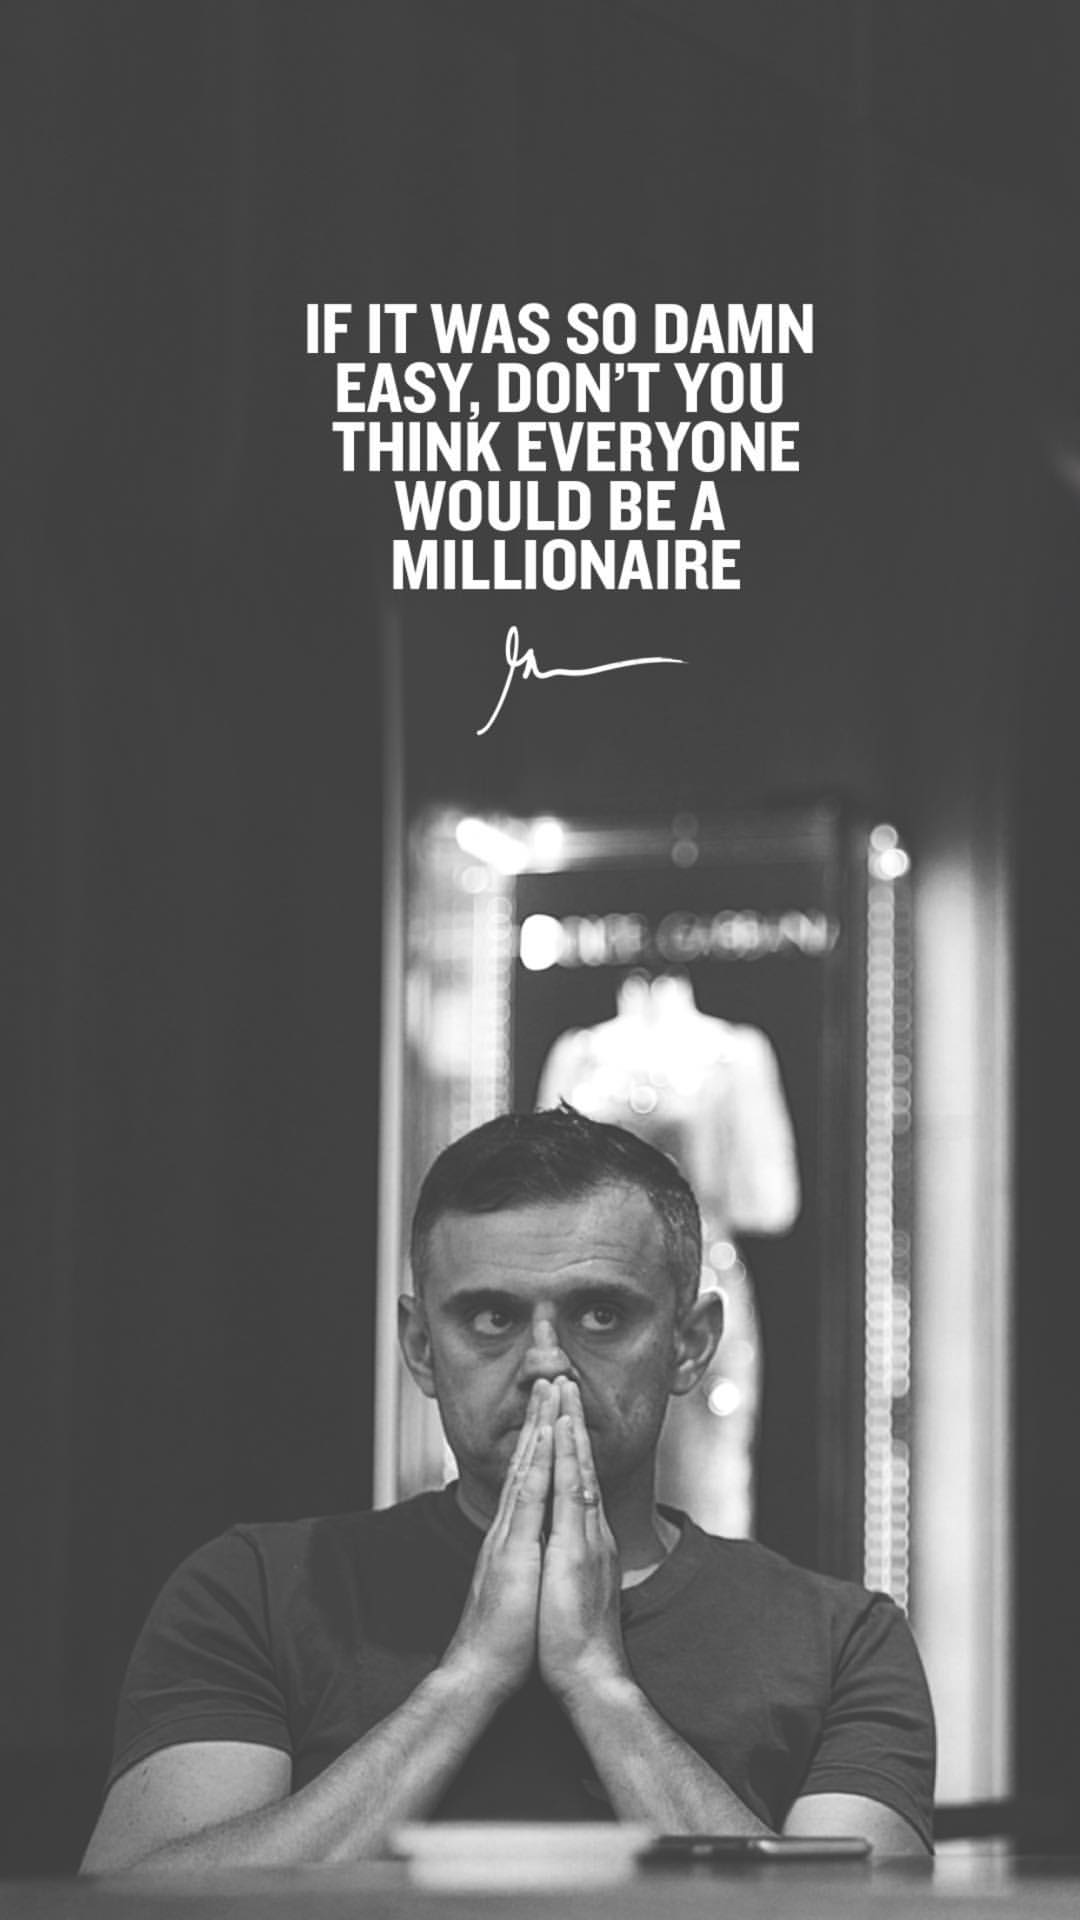 If It Was So Damn Easy Don't You Think Everyone Would Be A Millionaire